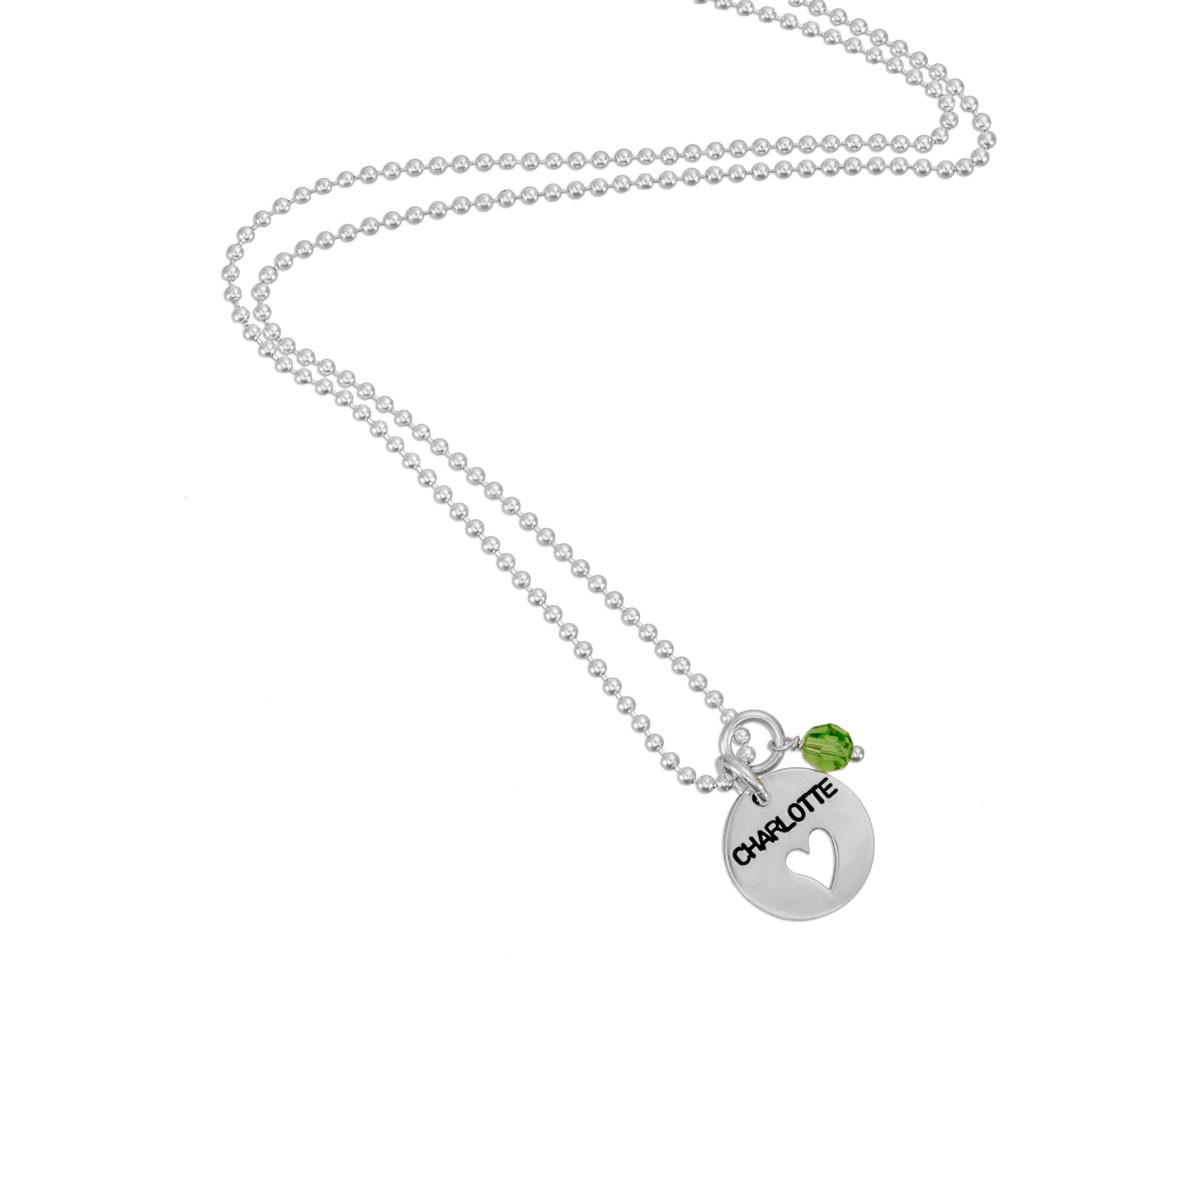 Heart Cut-Out Silver Disc Necklace, shown with birthstone